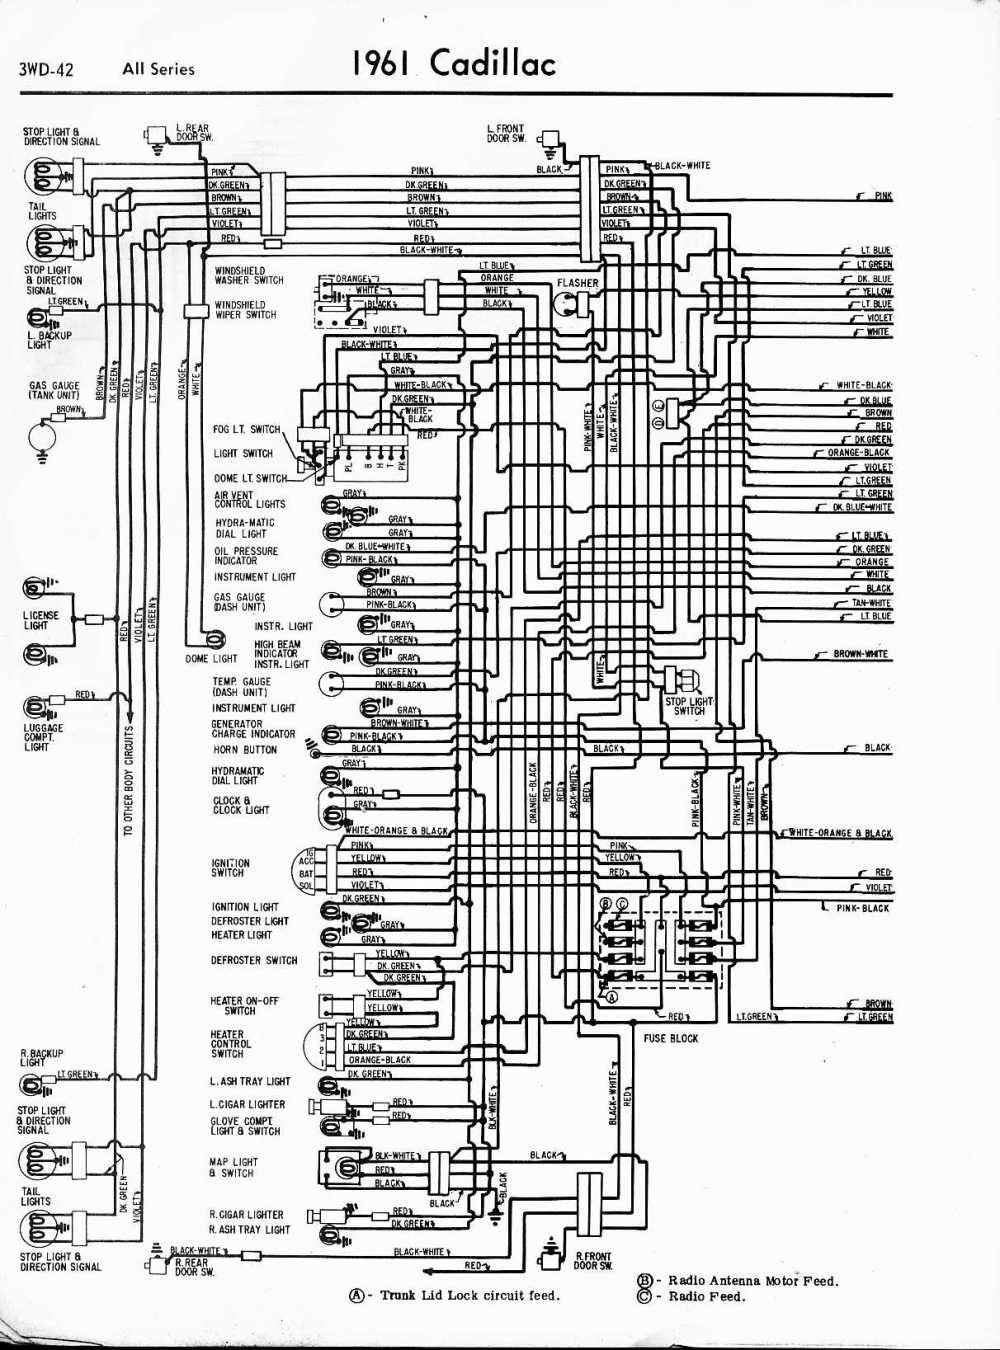 medium resolution of cadillac wiring diagrams 1957 1965 1961 cadillac radio wiring diagram 1961 all series left